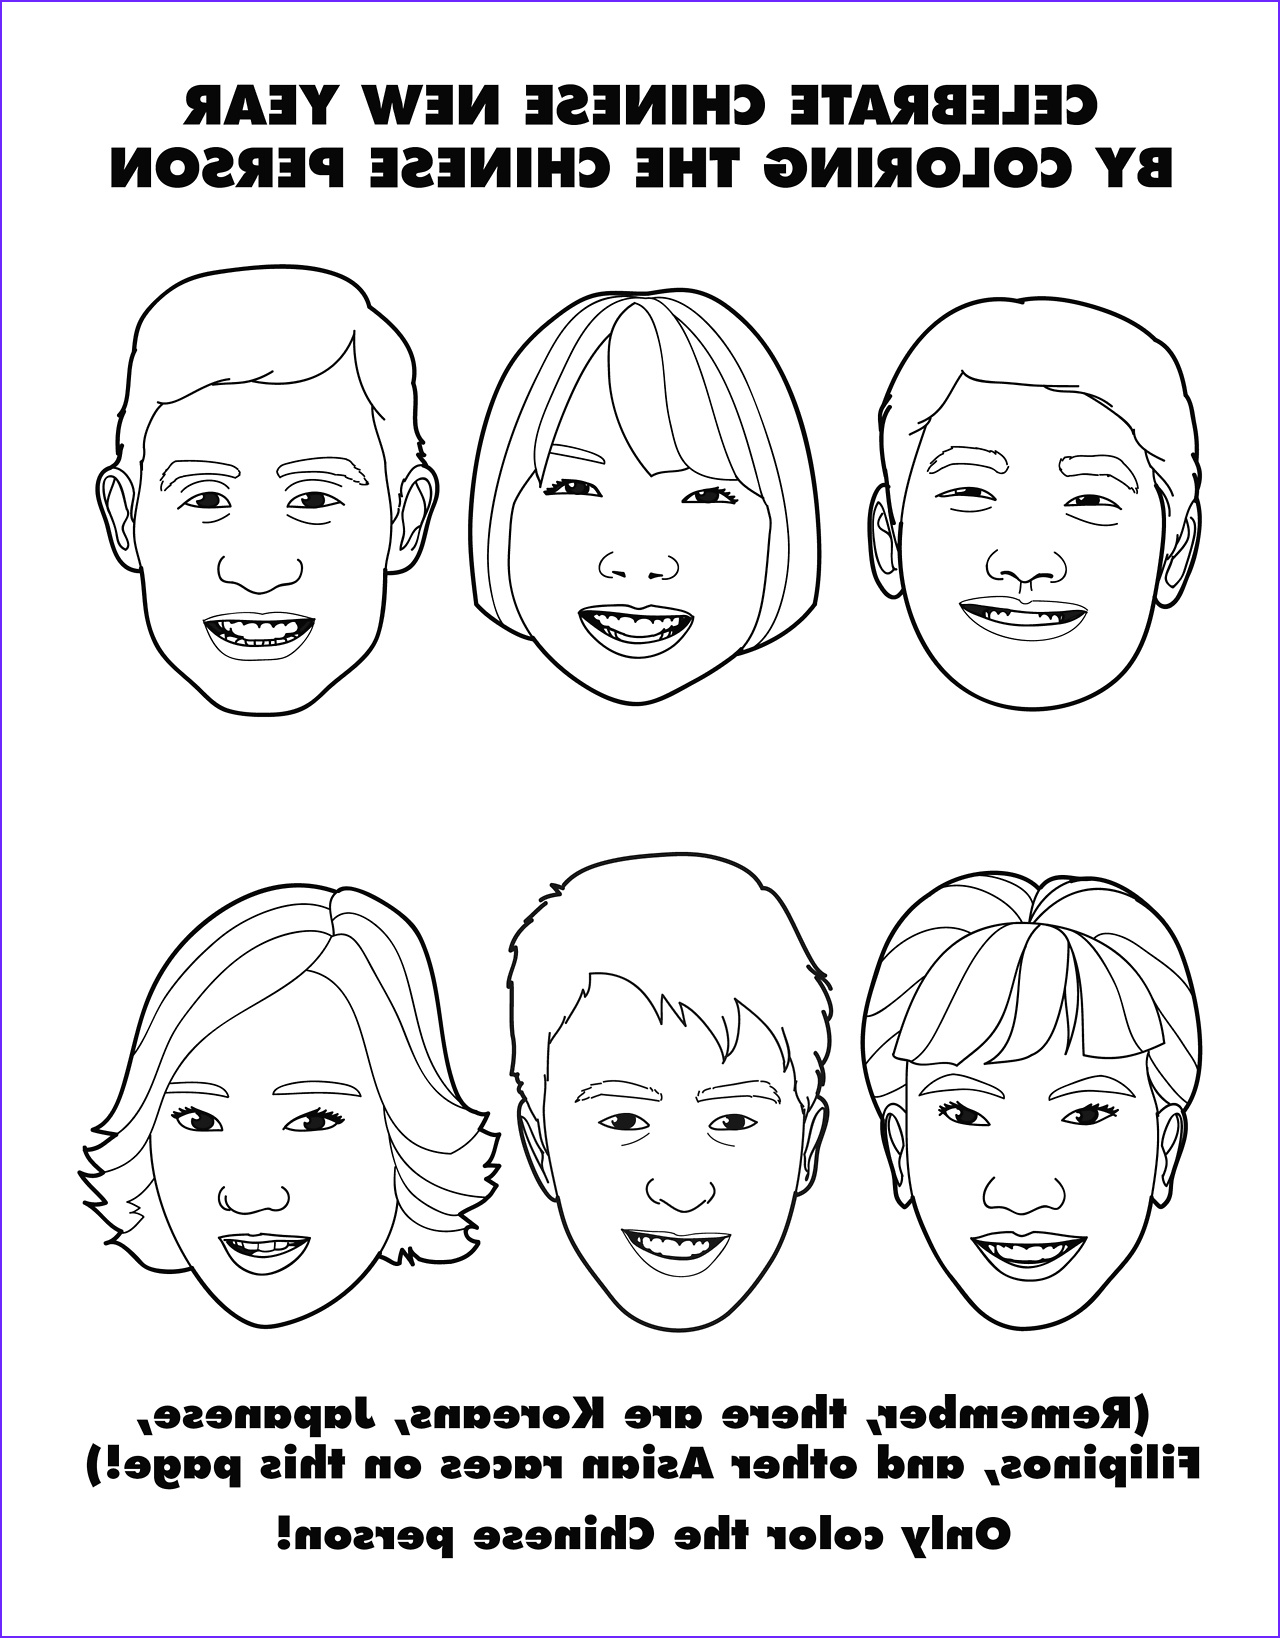 Coloring Pages for Grown Ups New Gallery 38 Pages From the 'coloring for Grown Ups' Activity Book